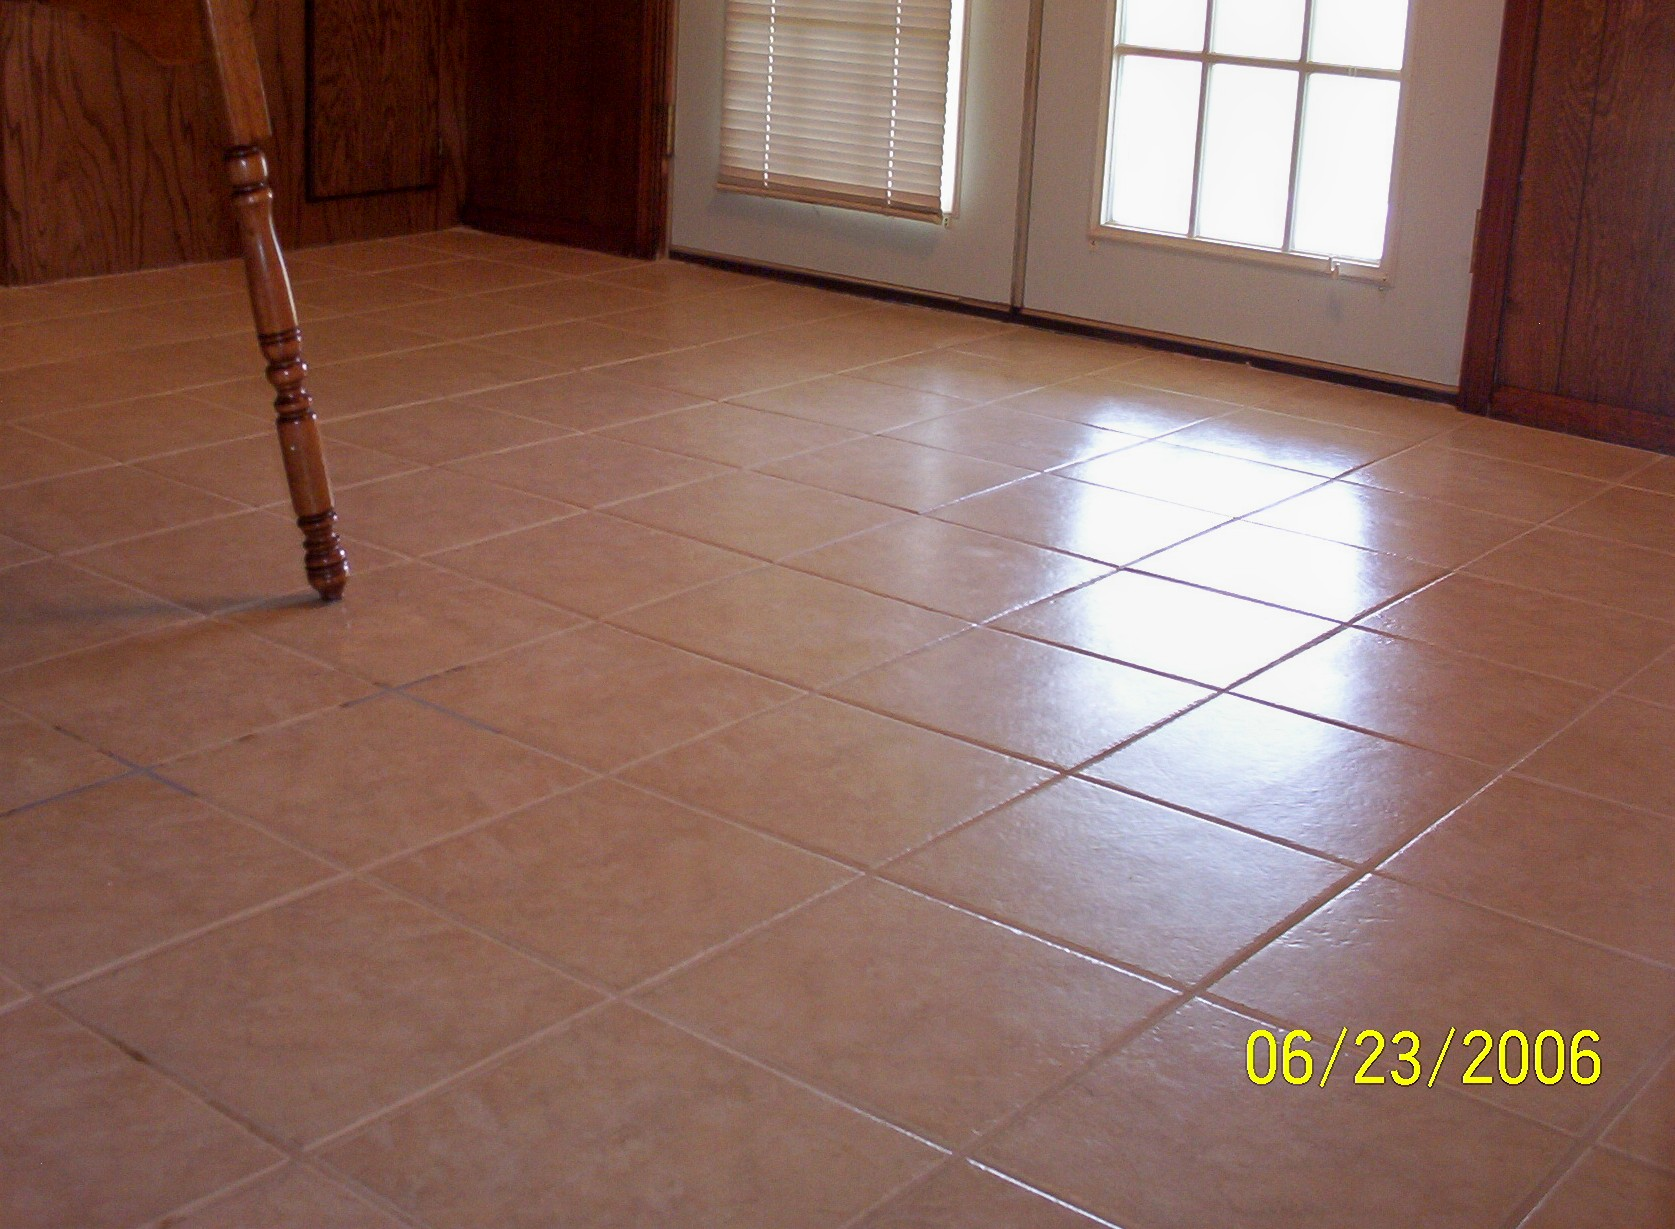 Kitchen Floor Tile - kootation.